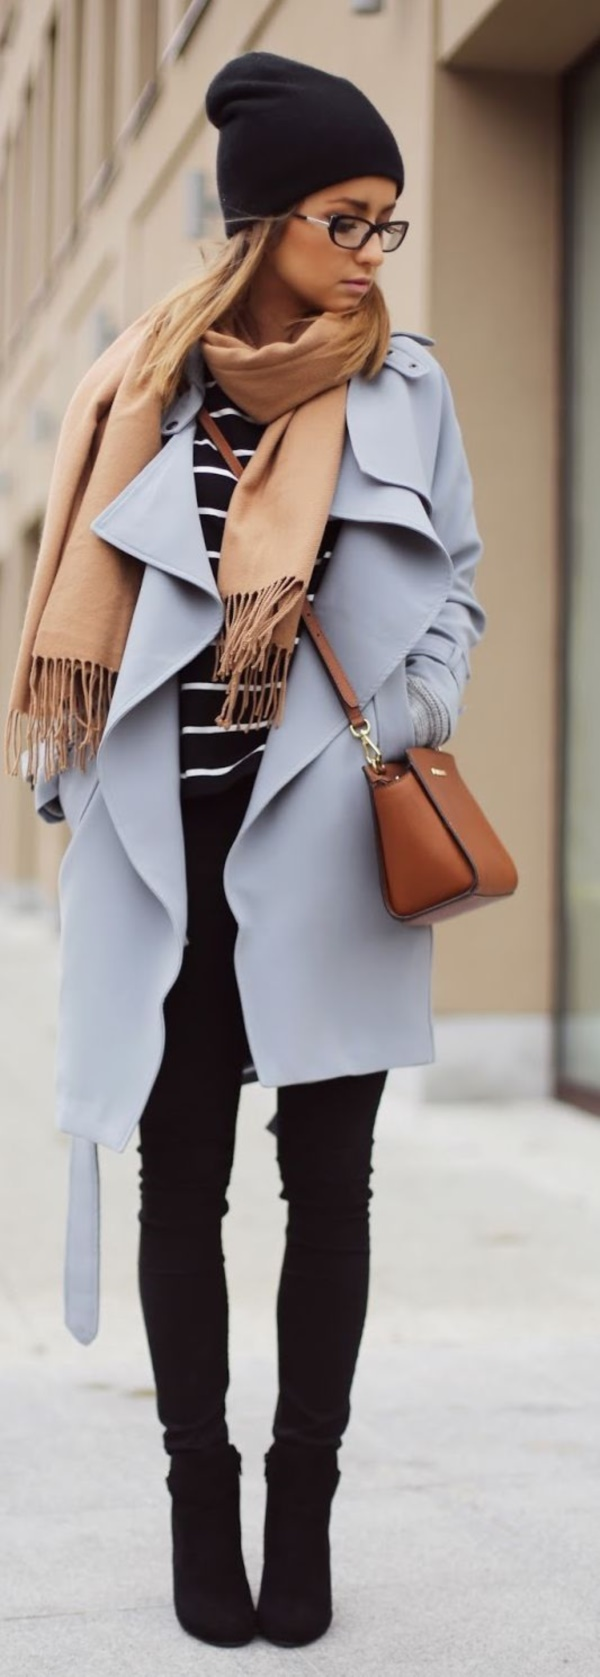 winter fashions hacks0041